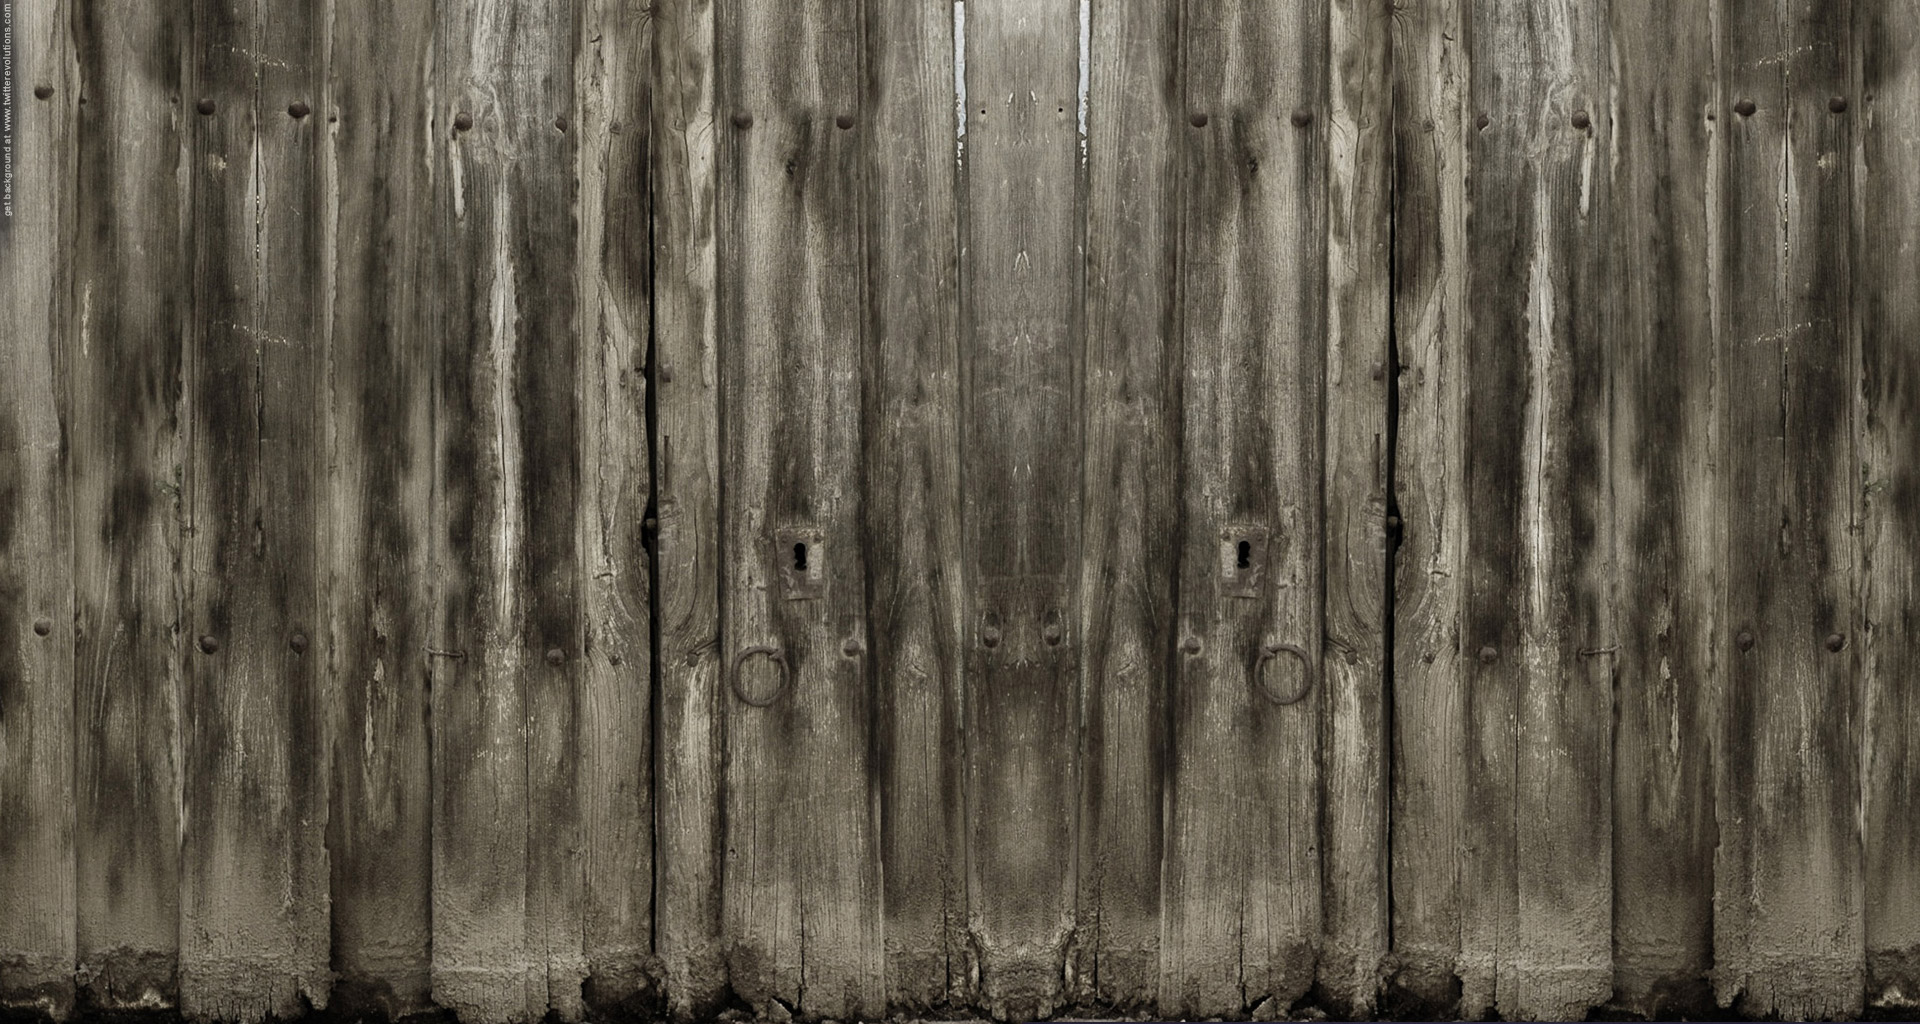 wood-pattern-twitter-background.jpg